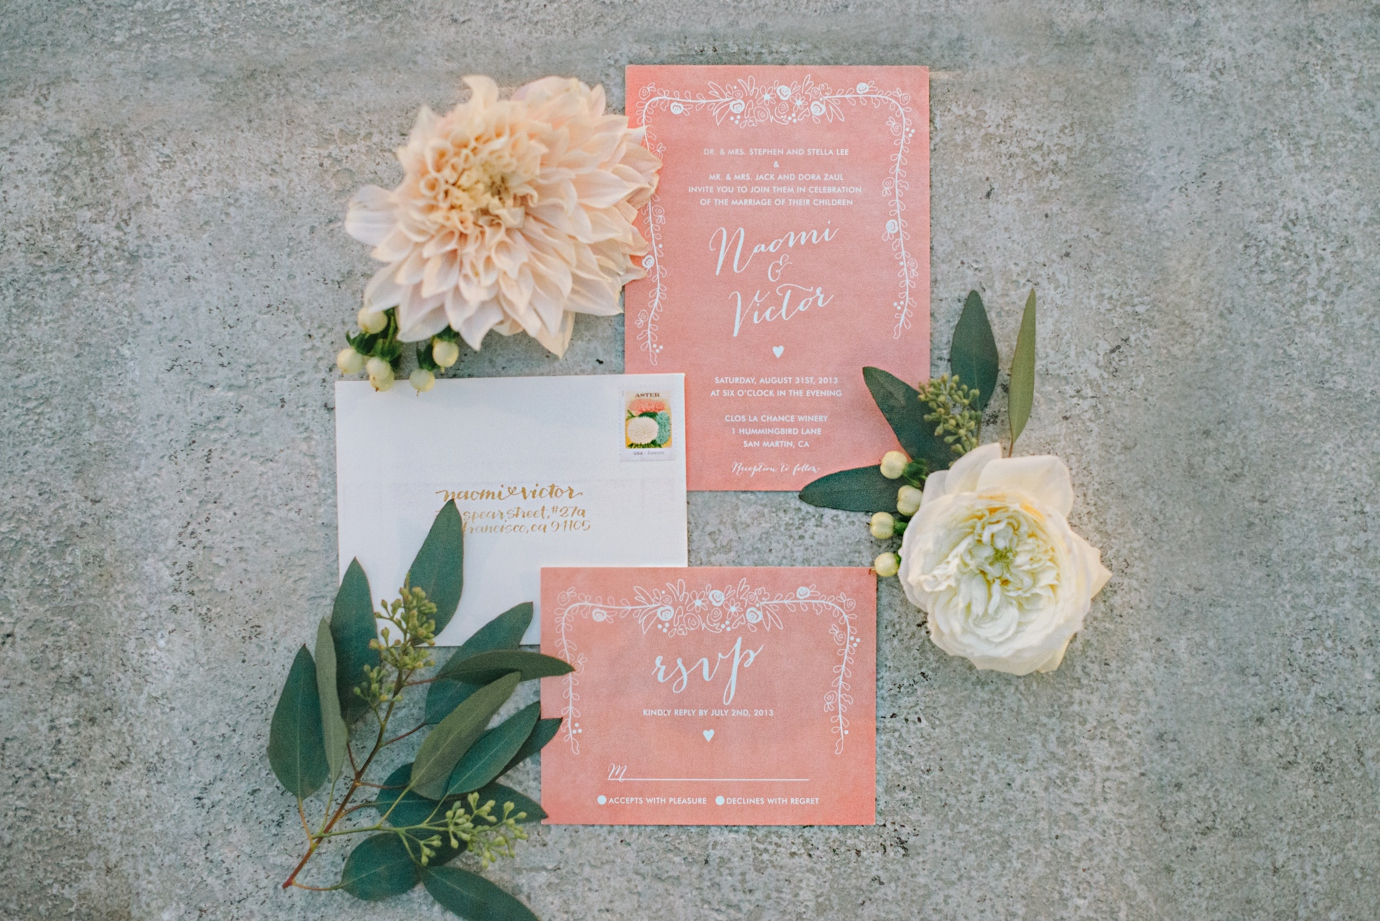 Featured style me pretty vic naomi wedding clos la chance featured style me pretty vic naomi wedding clos la chance winery mightylinksfo